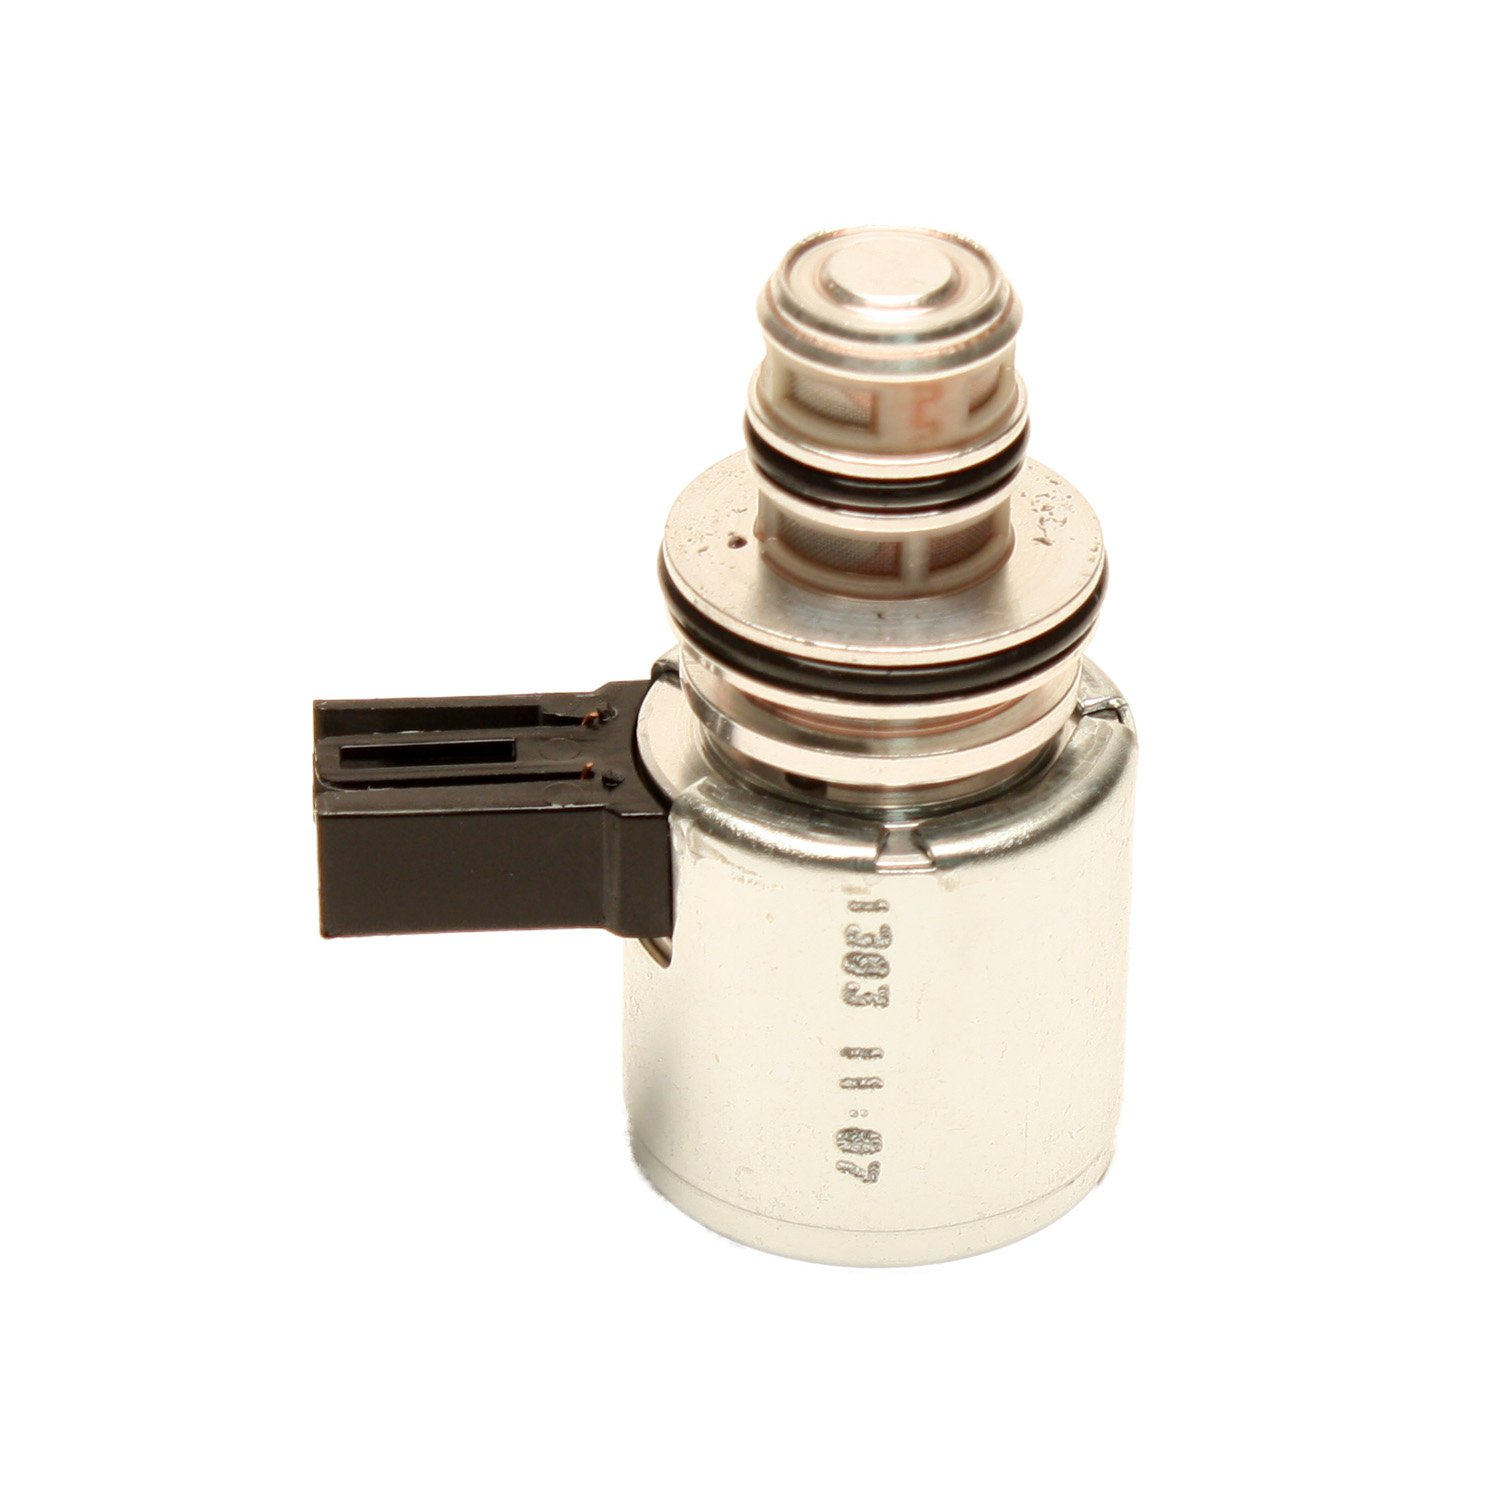 BORG WARNER 50185 Governor Pressure Solenoid with 2 Pin Connector, A518, 727, 1993-Up by BorgWarner